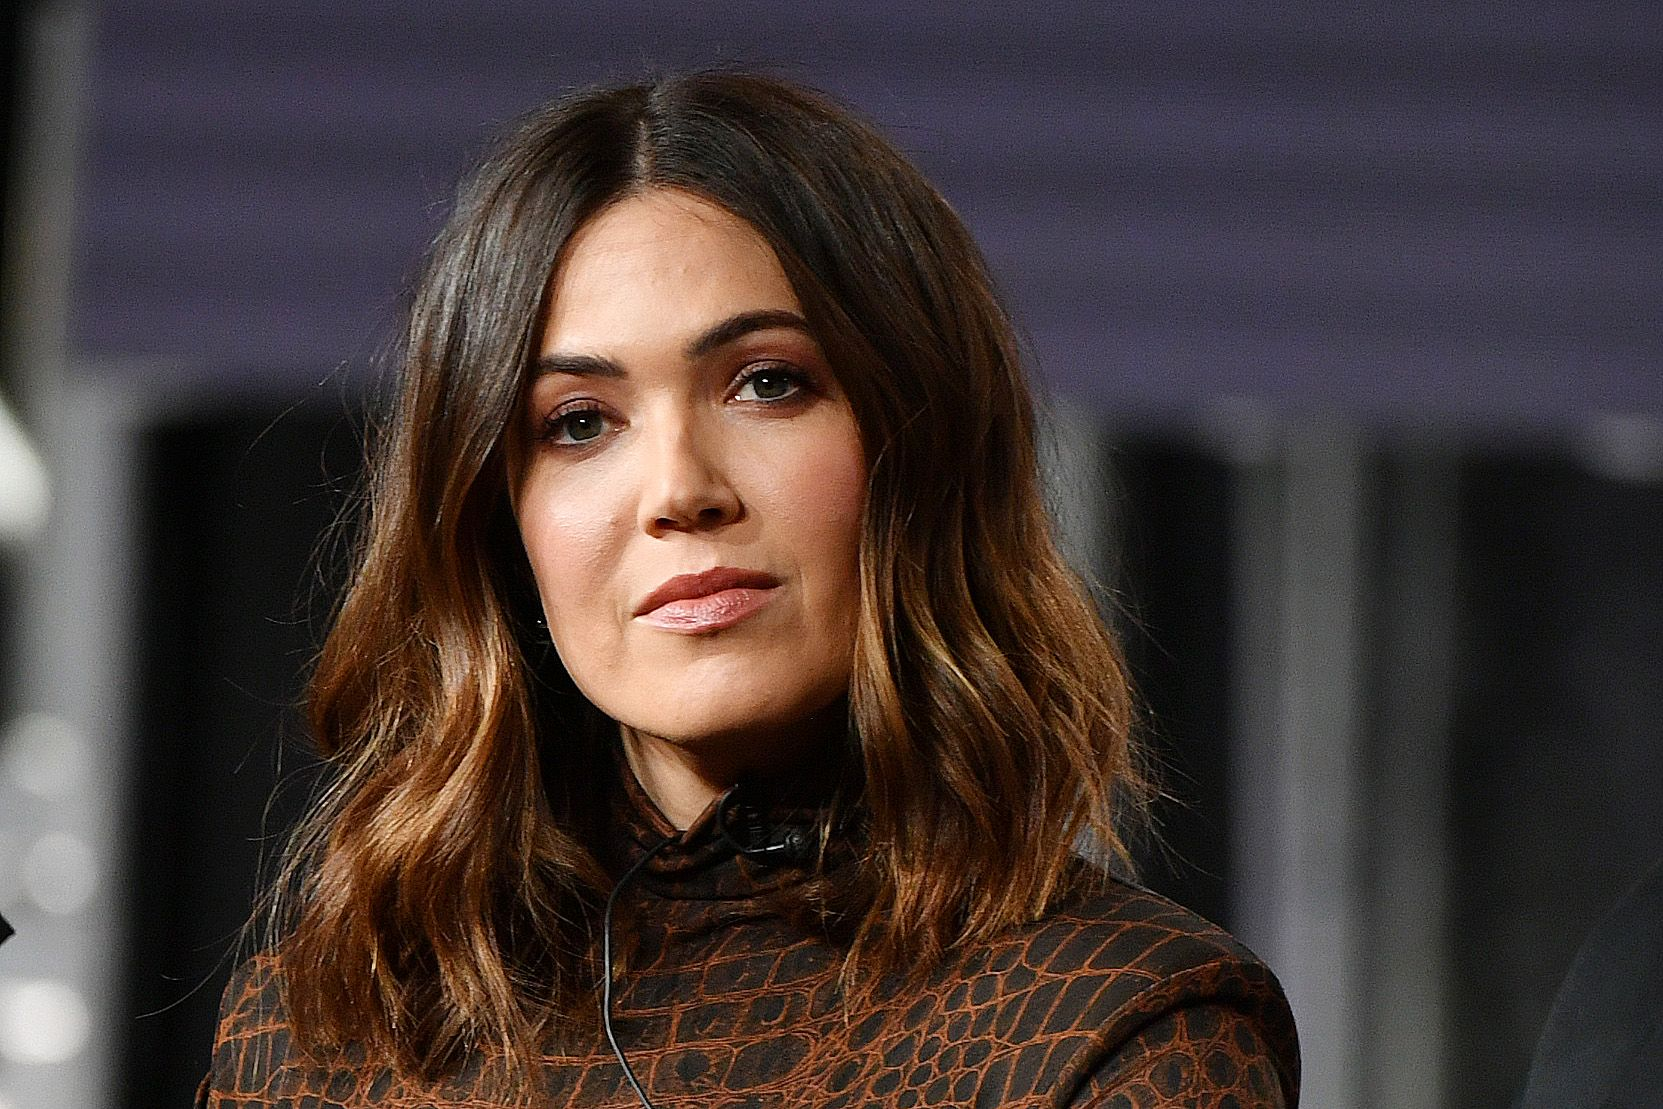 Mandy Moore Opens Up About Her Fertility Issues Before Getting Pregnant – She Was About To Undergo Surgery When She Found Out!